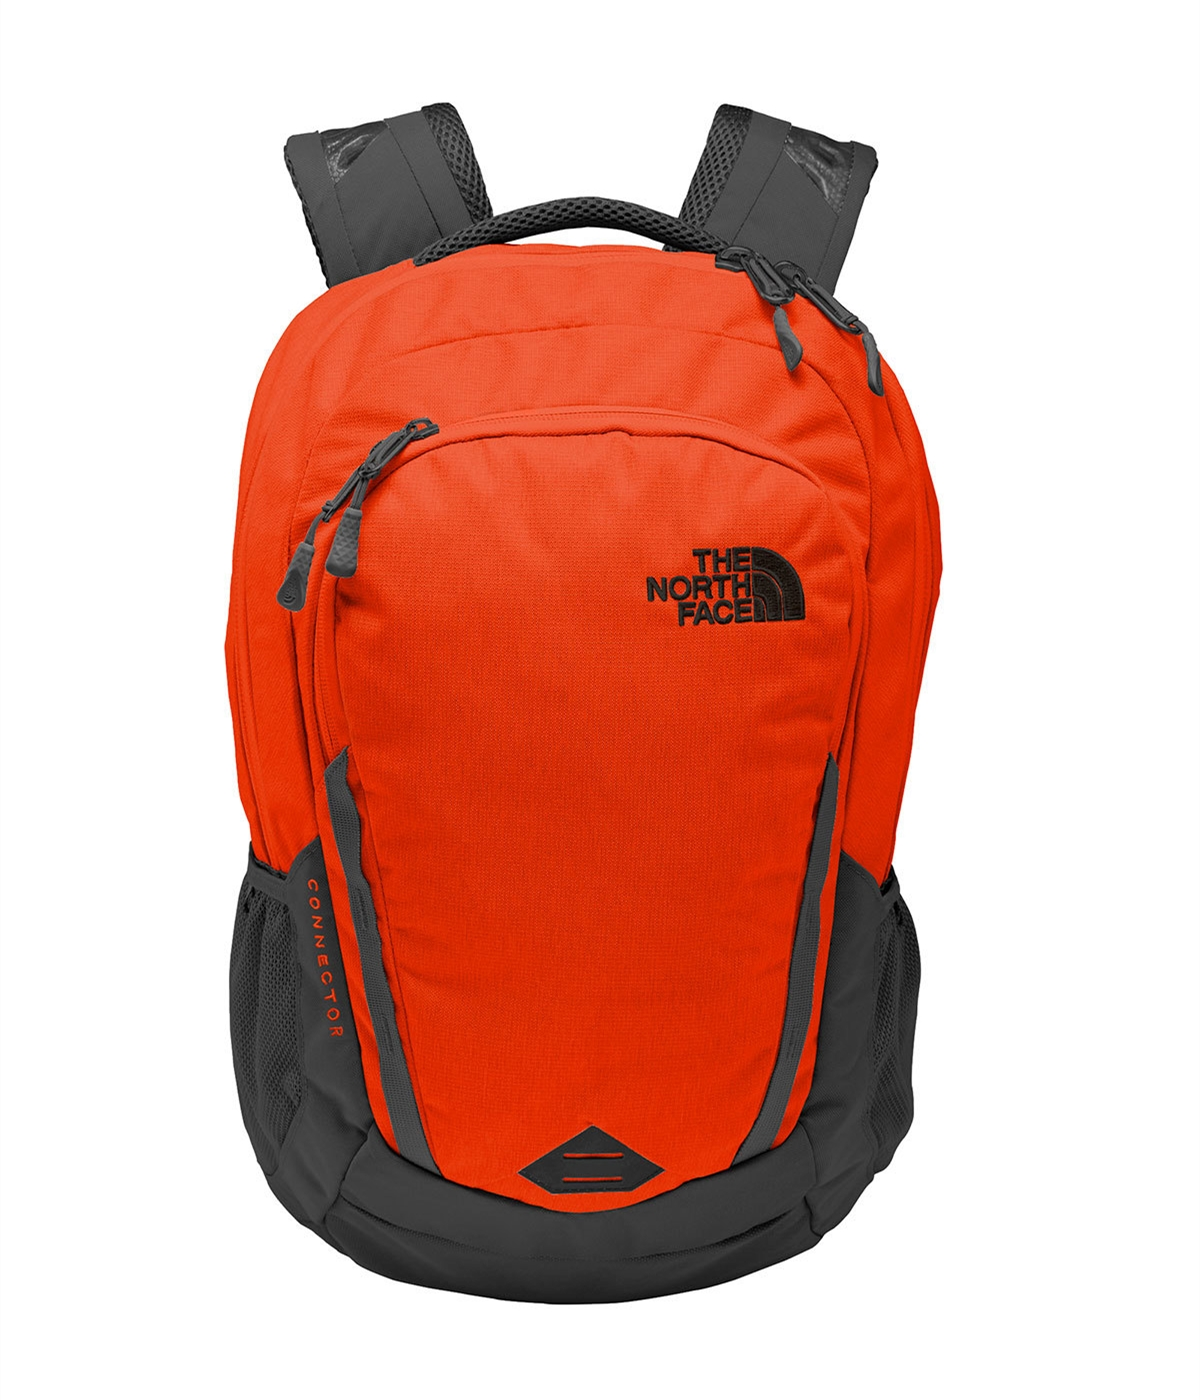 The North Face Connector Backpack from NYFifth